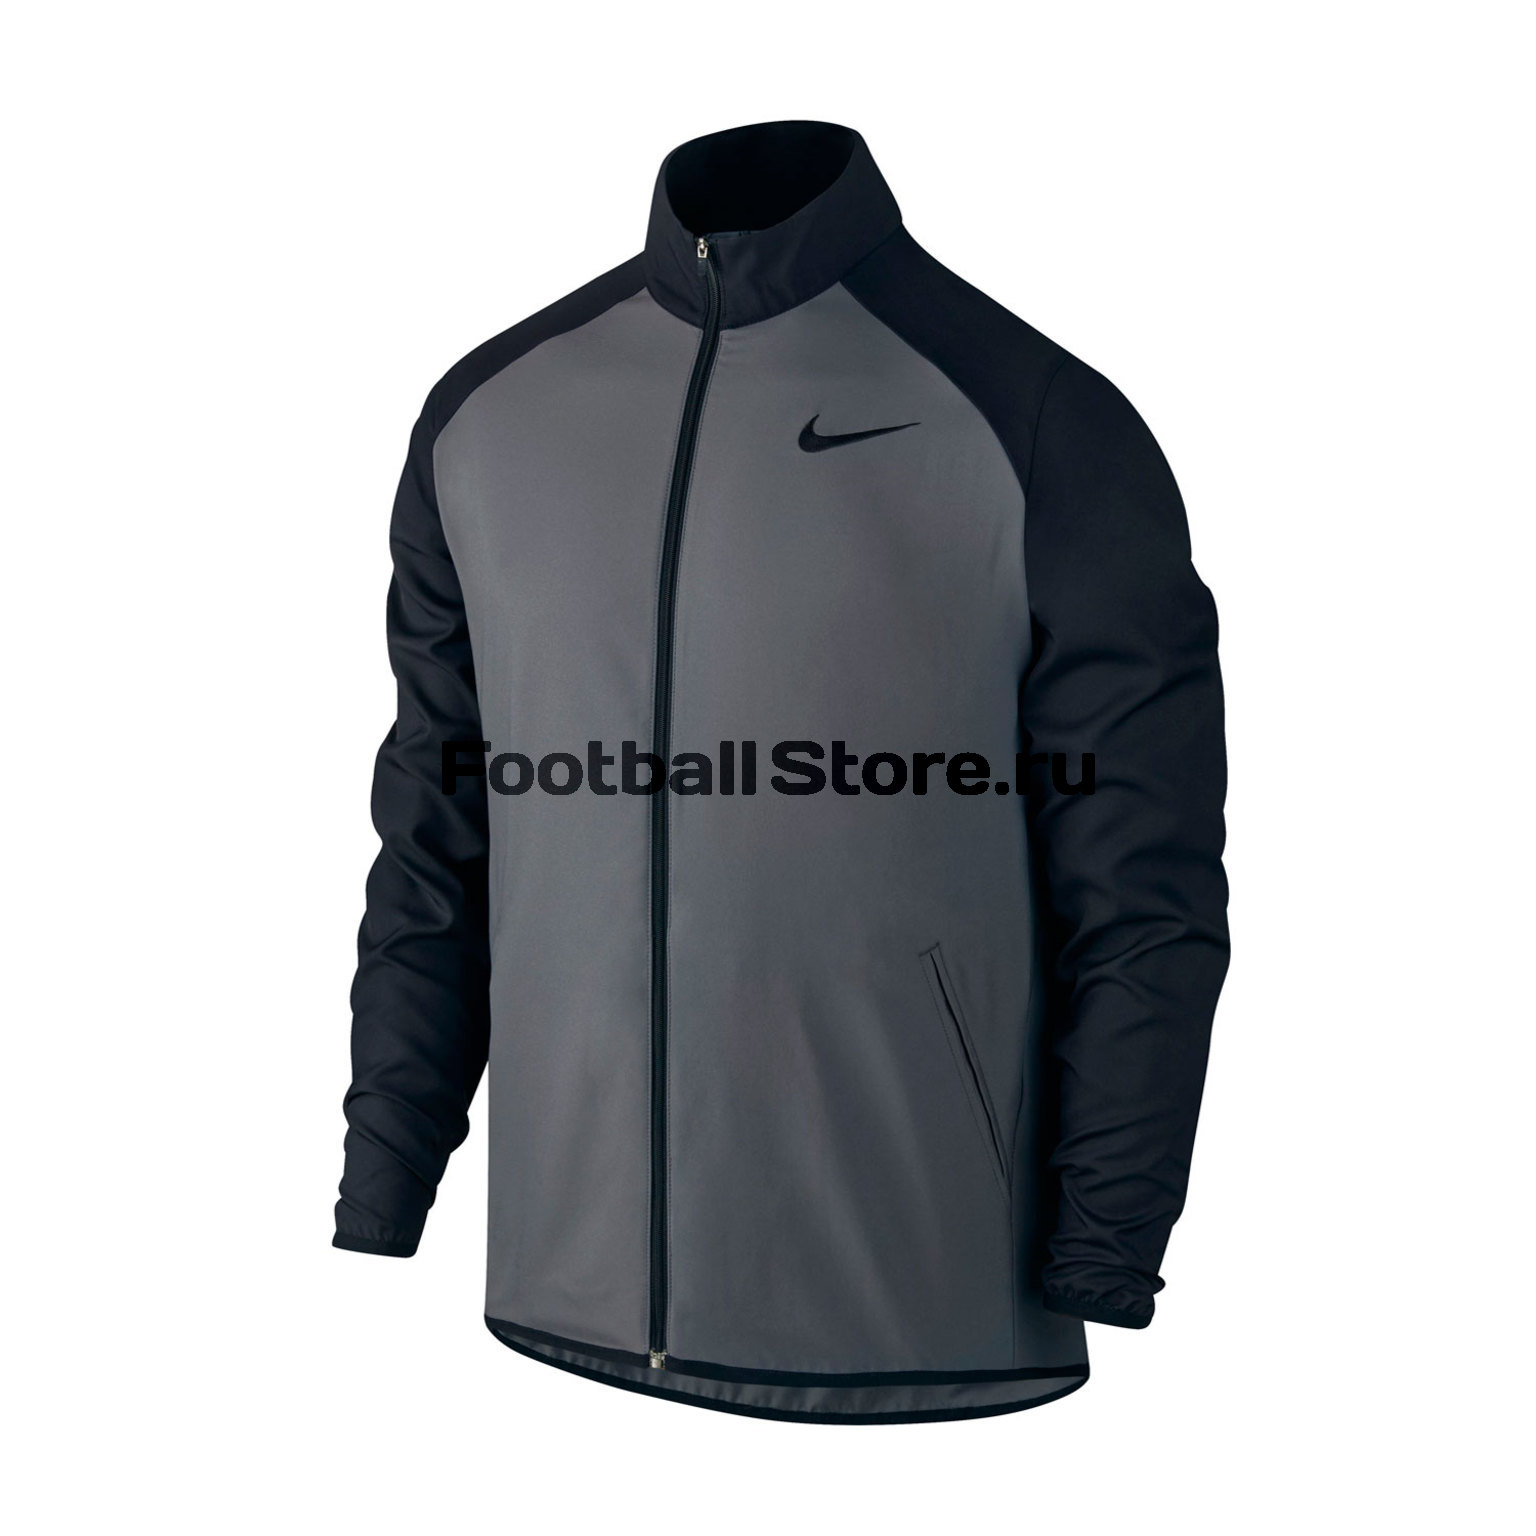 Куртка Nike Dry Team Woven 800199-021 куртка мужская nike men s dry training jacket 800199 021